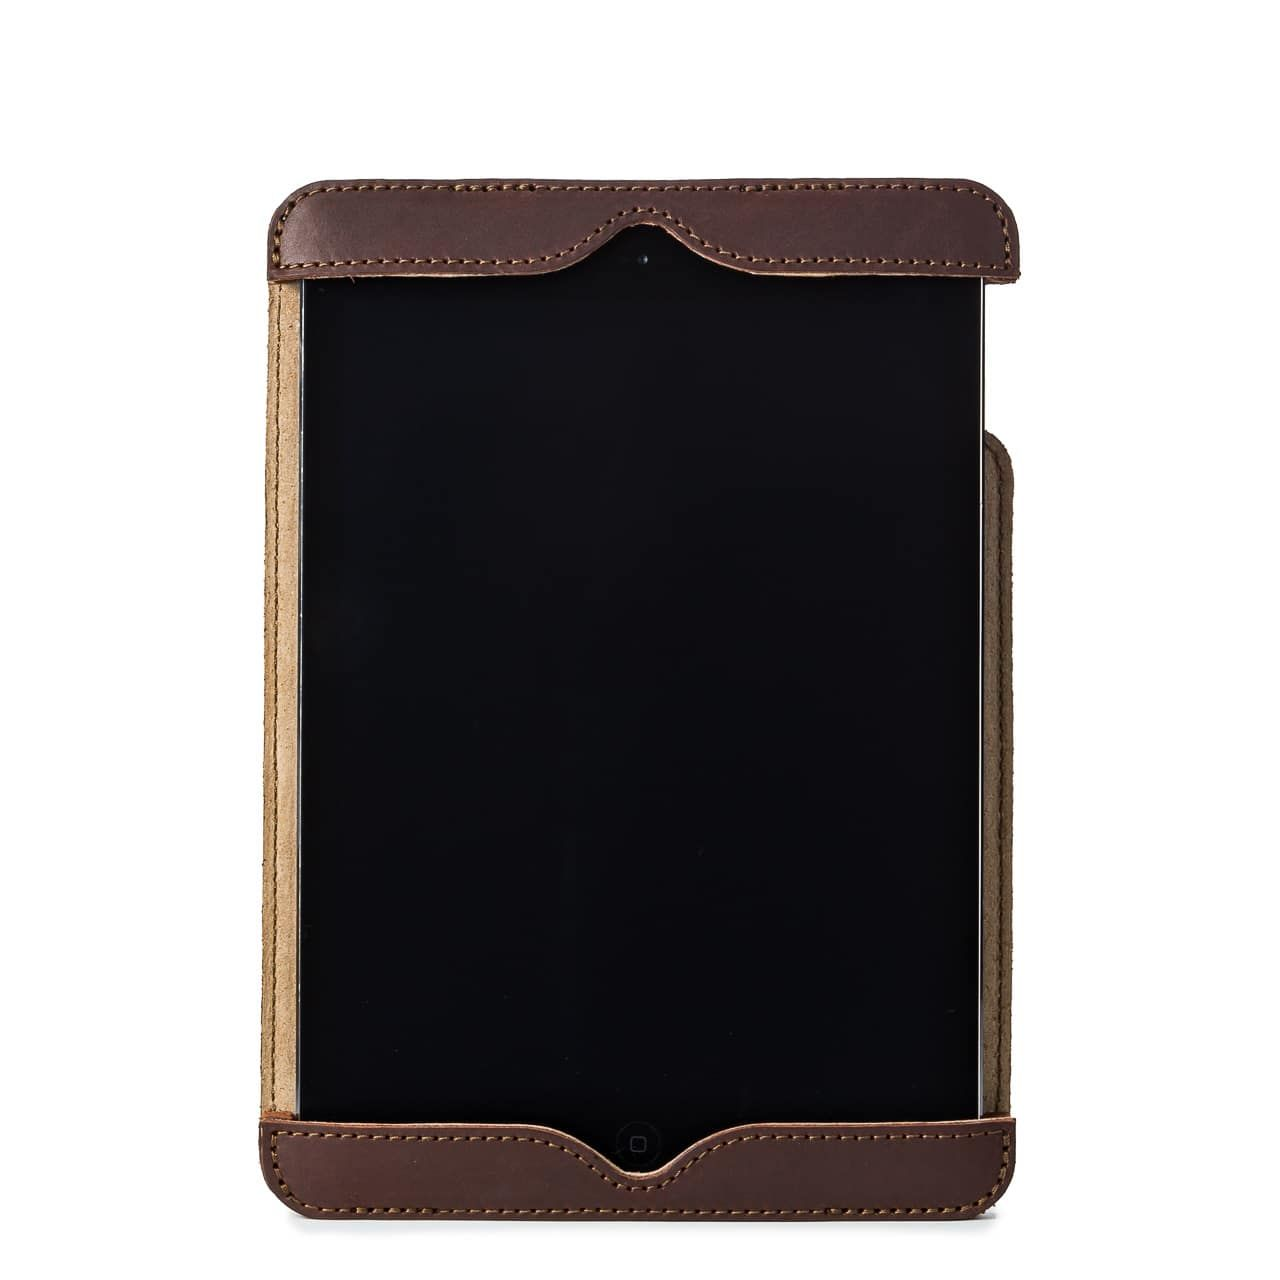 Simple iPad Case in color Chestnut Front with an iPad